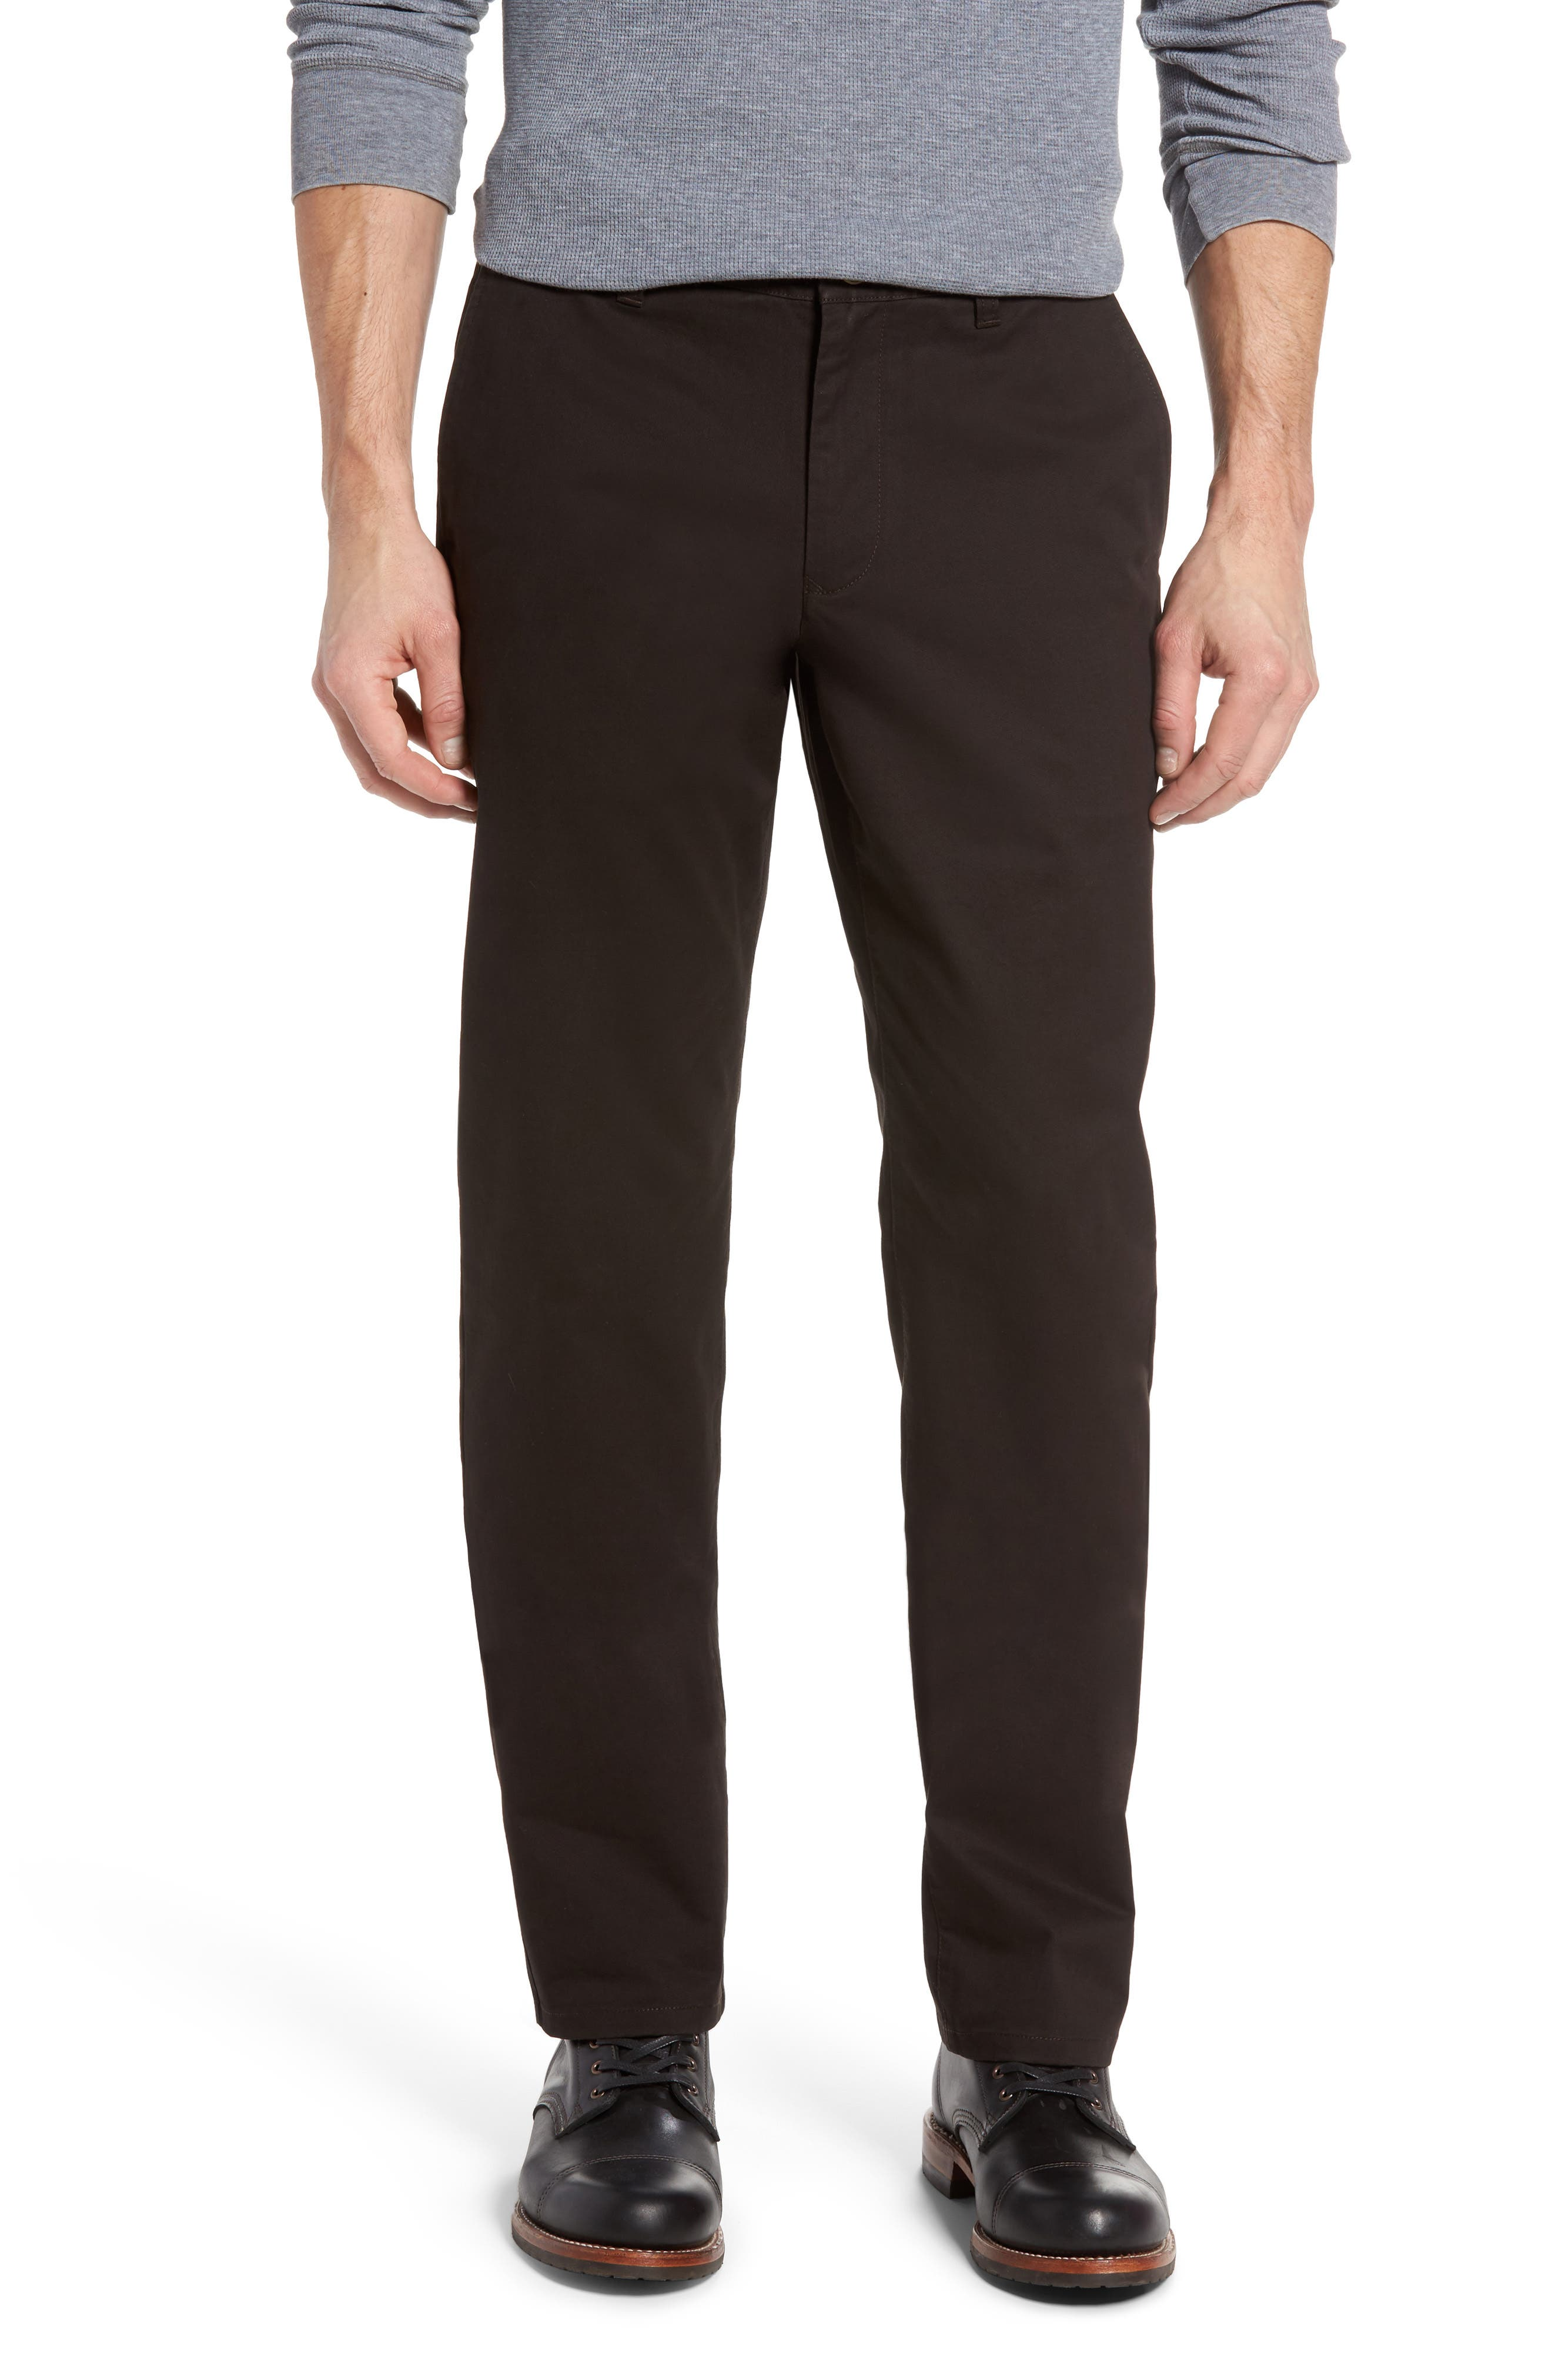 Alternate Image 1 Selected - Bonobos Straight Leg Stretch Washed Chinos (Tall)